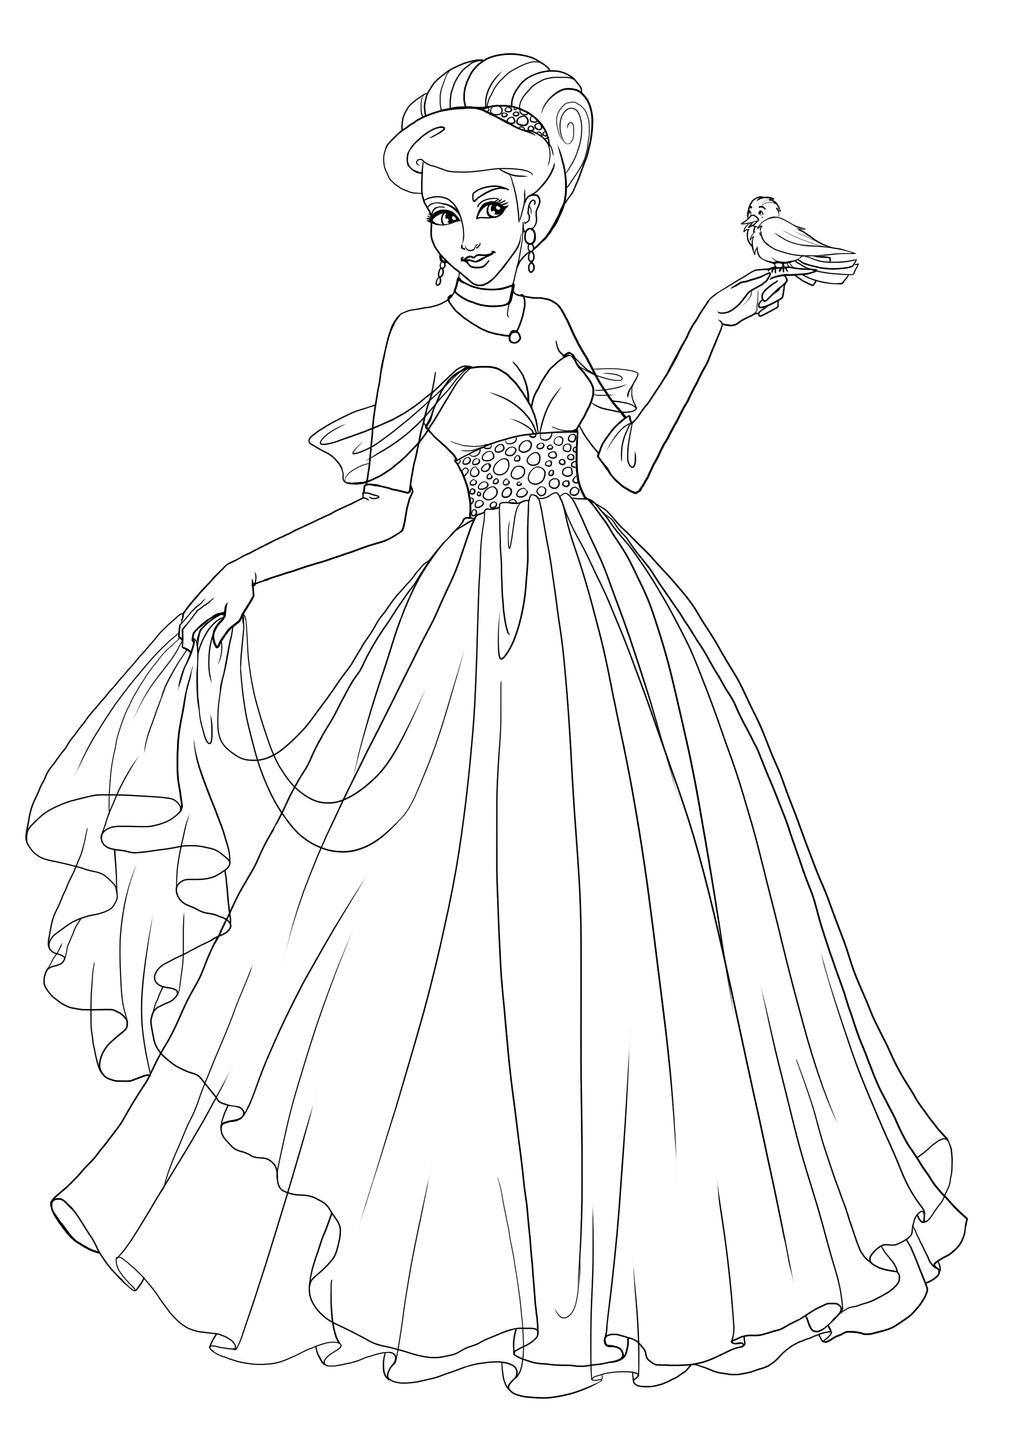 Princess mulan coloring pages